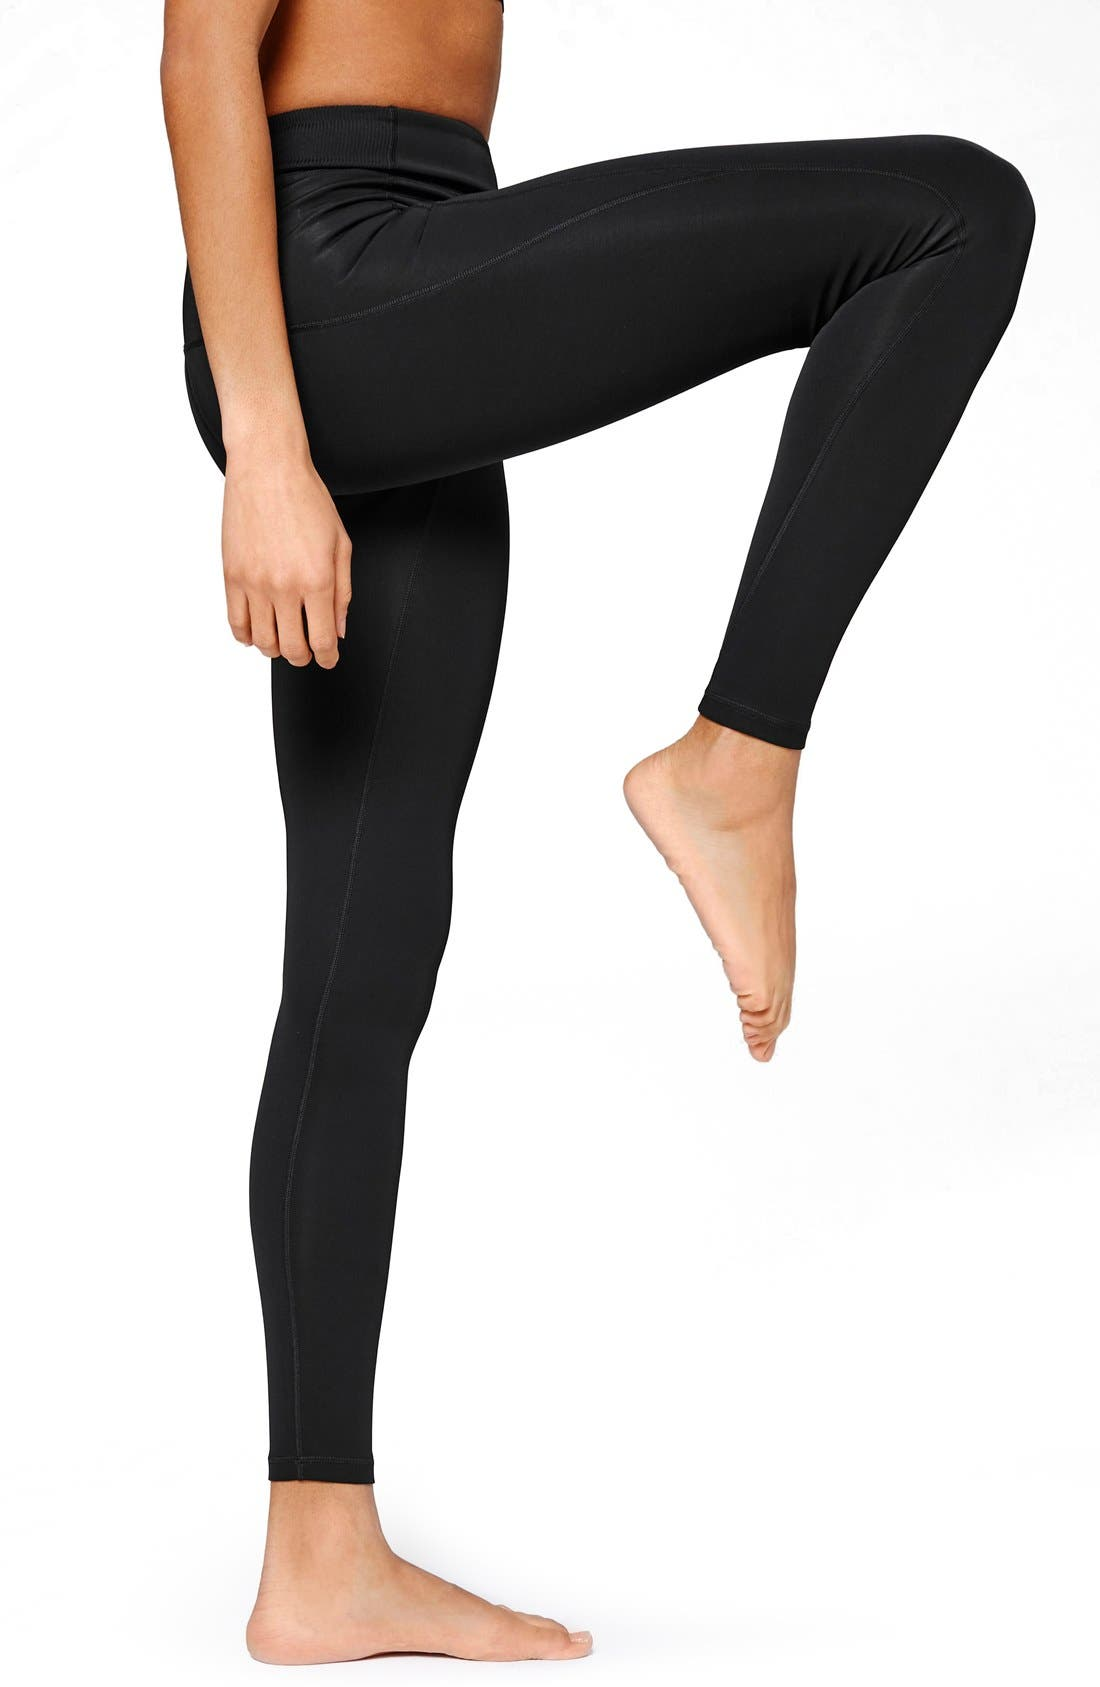 IVY PARK 'Y' High Rise Leggings